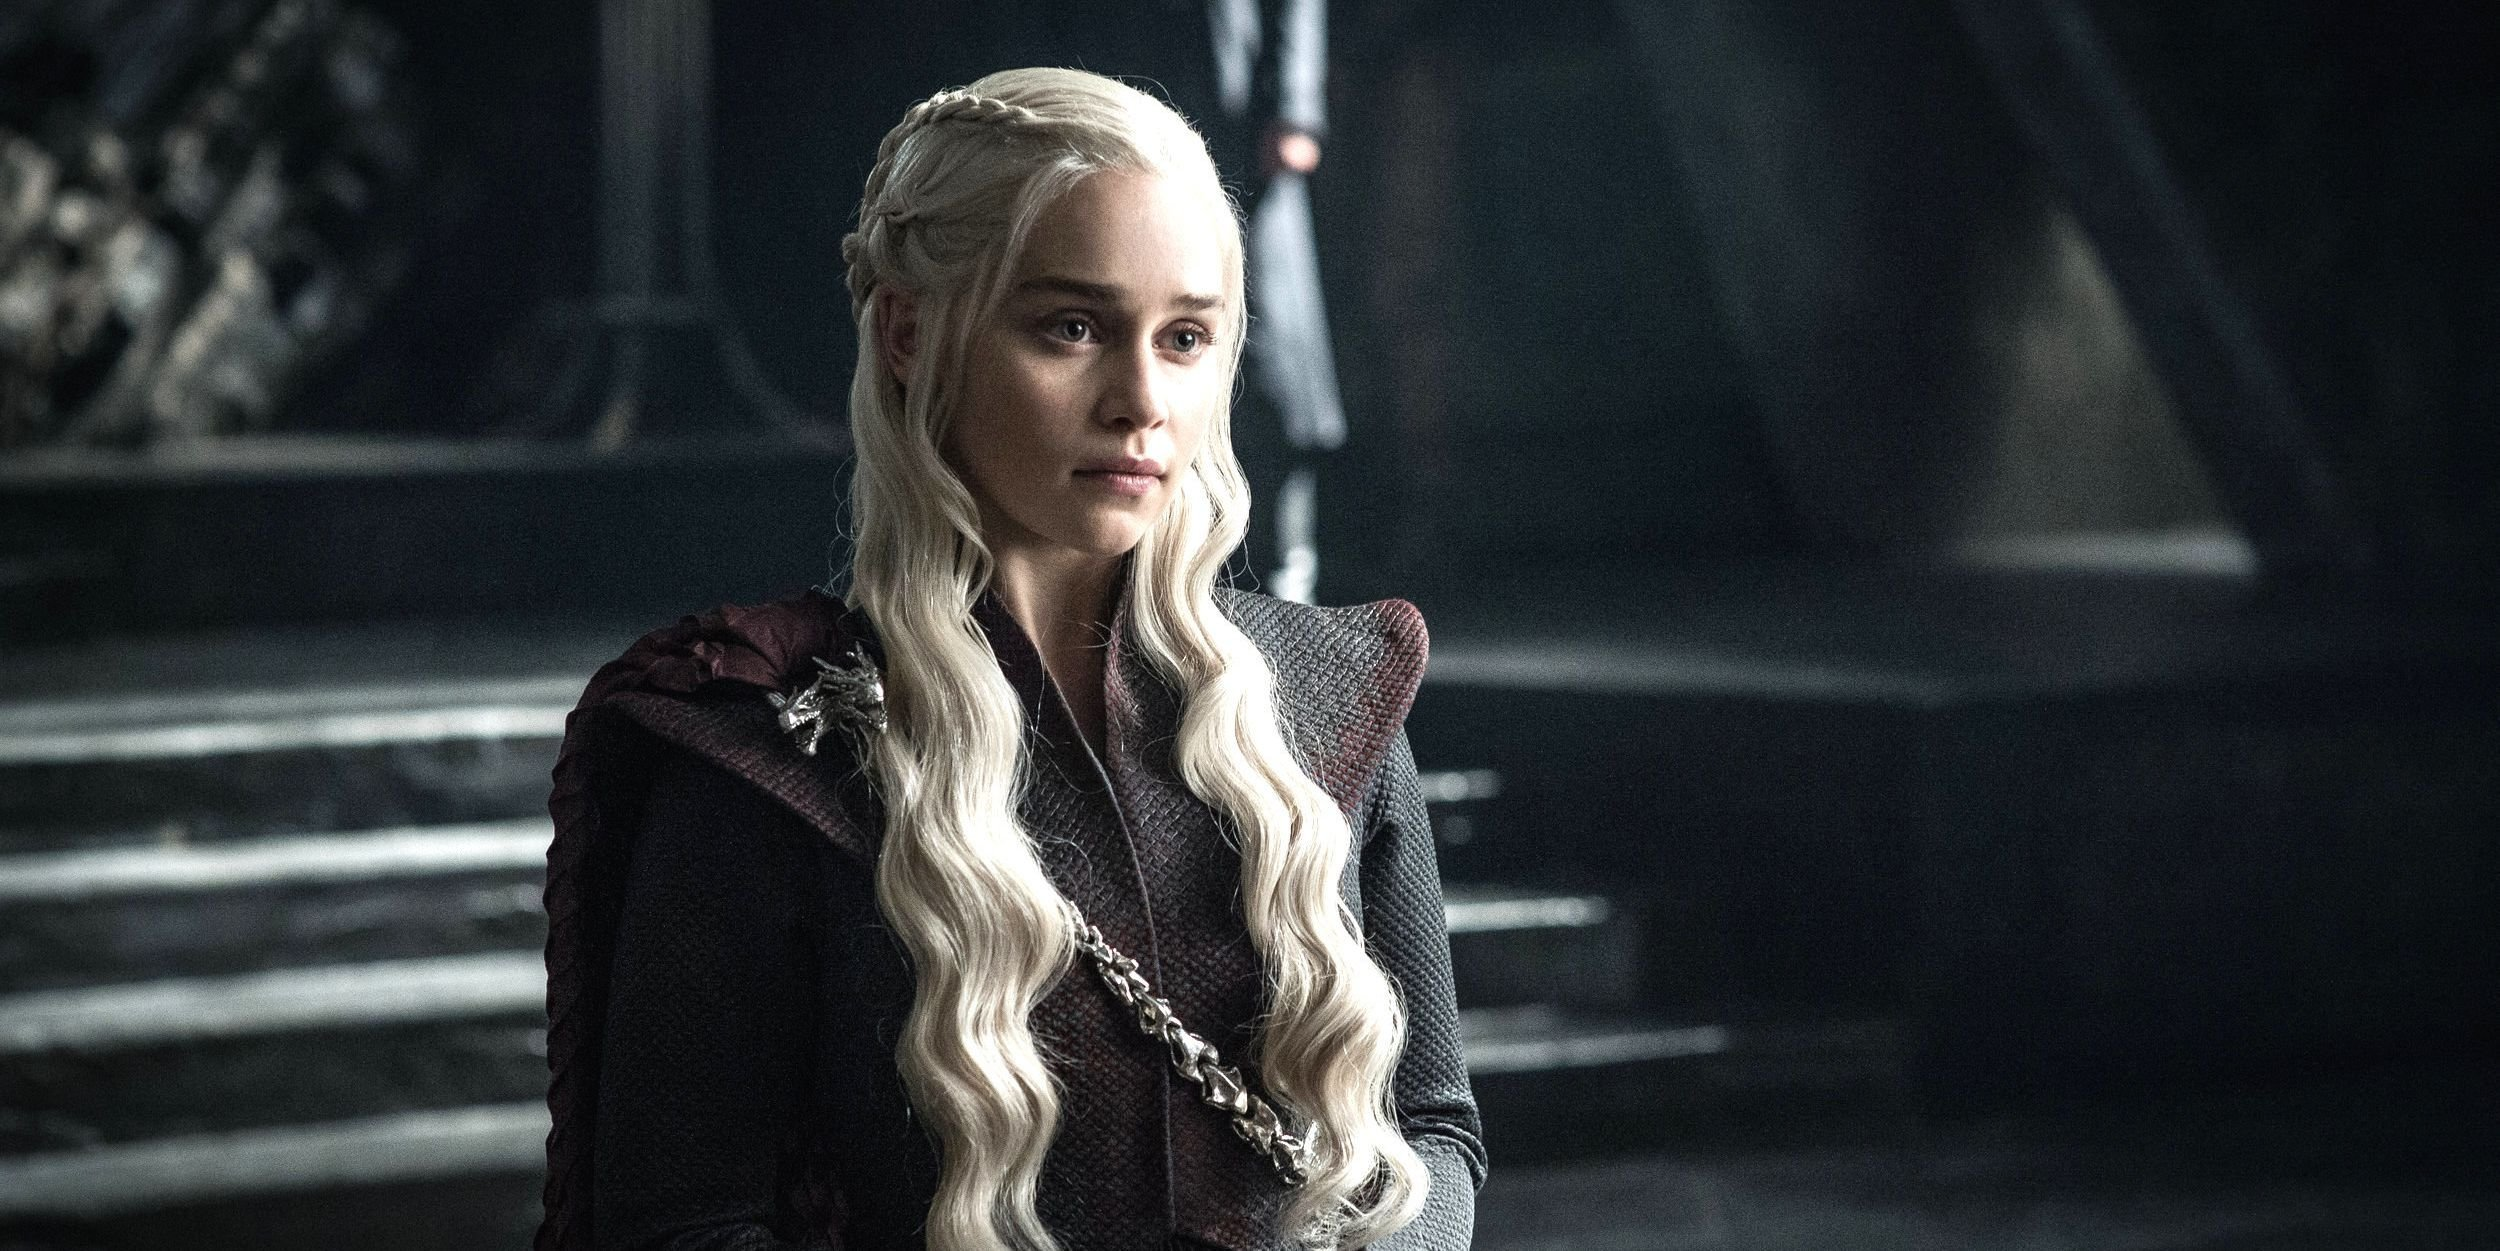 Drop Everything and Watch Sansa and Daenerys Meet for the First Time in This 'Game of Thrones' Season 8 Clip